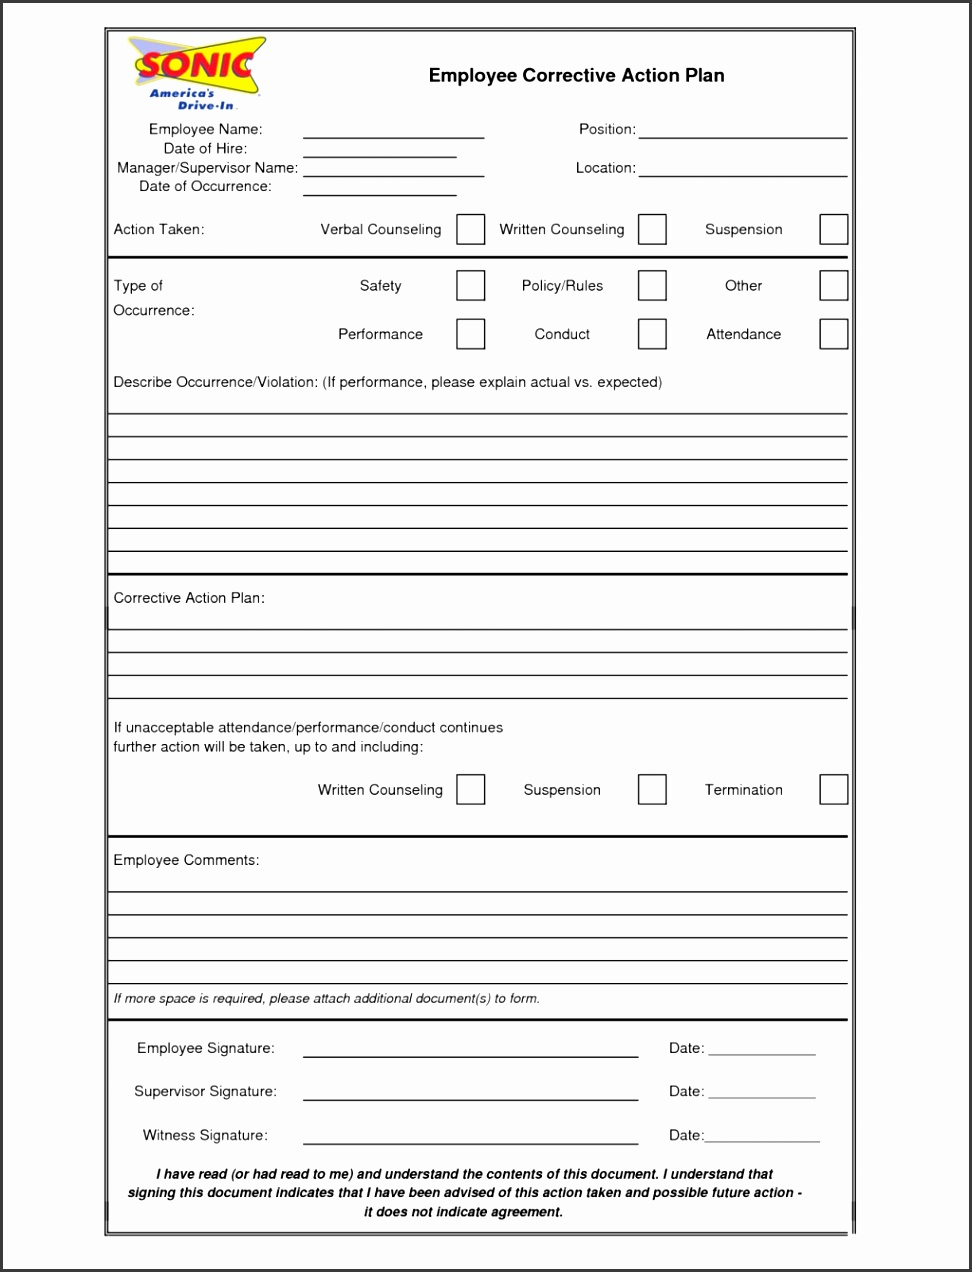 Employee Corrective Action Plan Template Form Sample Blank